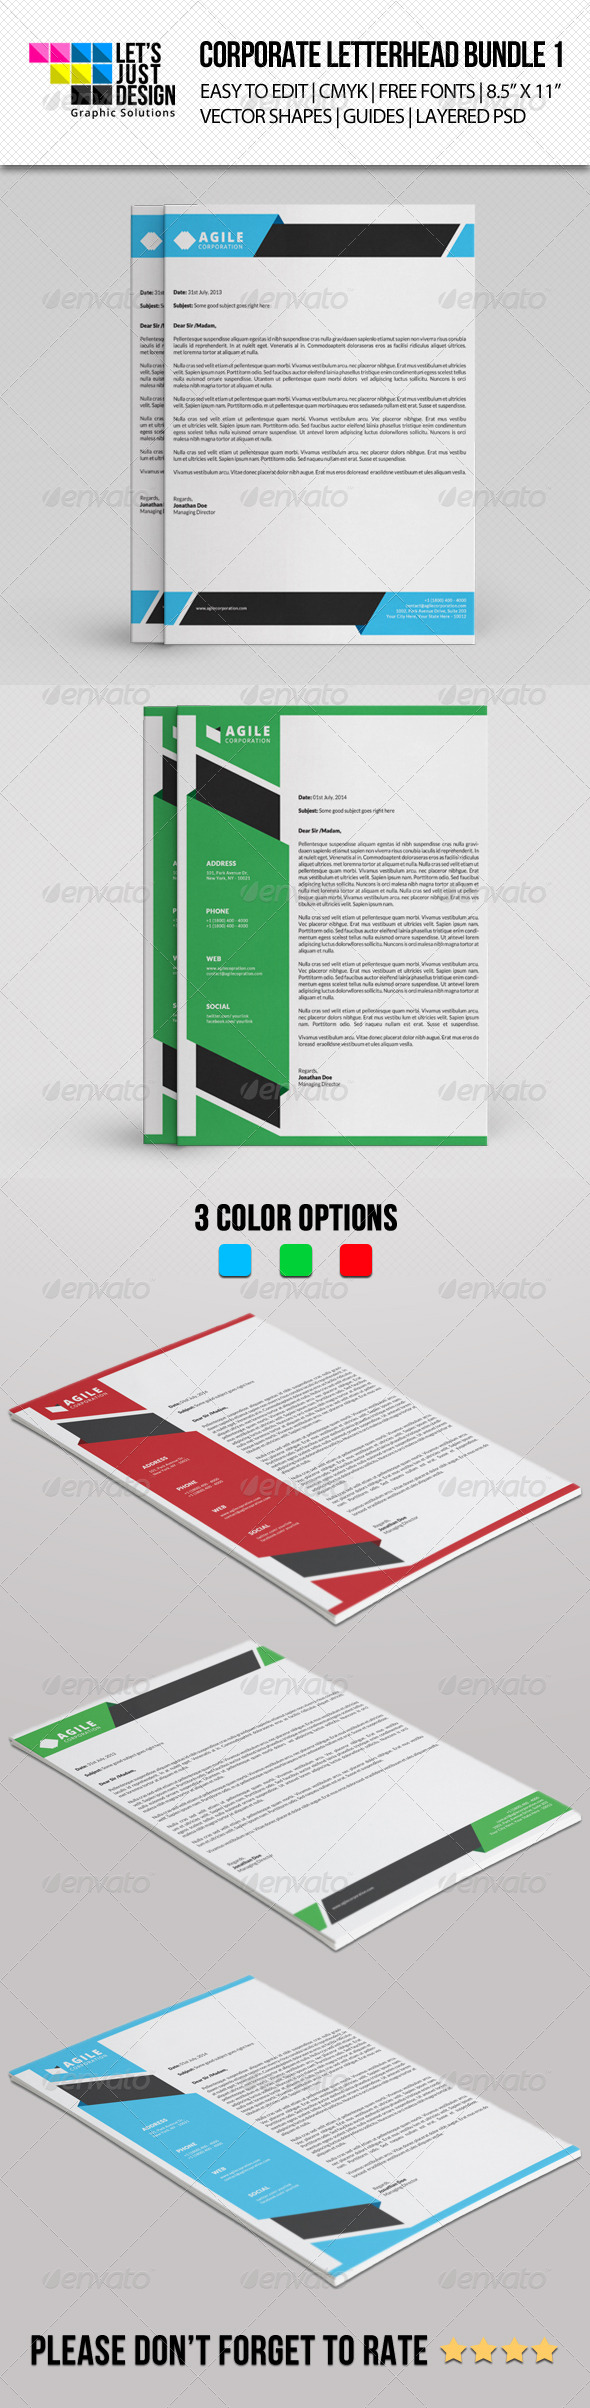 GraphicRiver Corporate Letterhead Bundle Vol 1 8492806